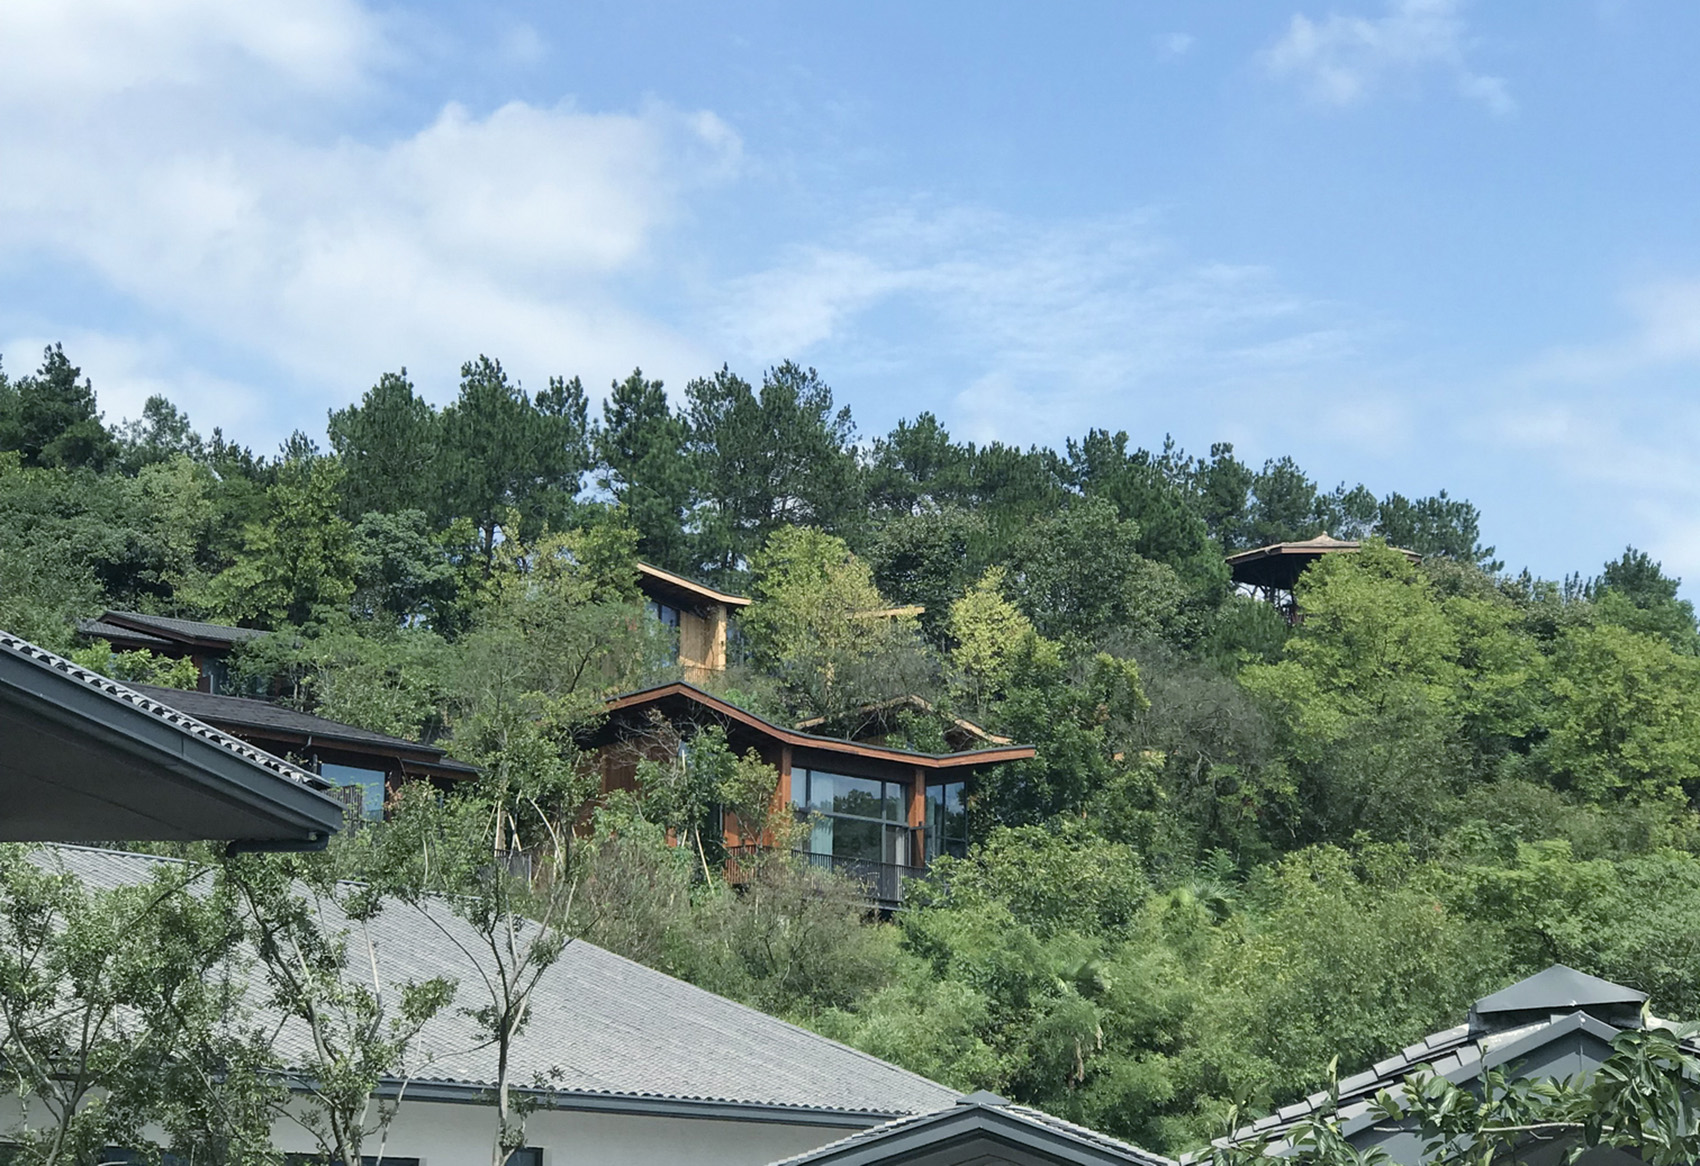 017-fuchun-mountain-resort-china-by-the-design-institute-of-landscape-architecture-china-academy-of-art.jpg